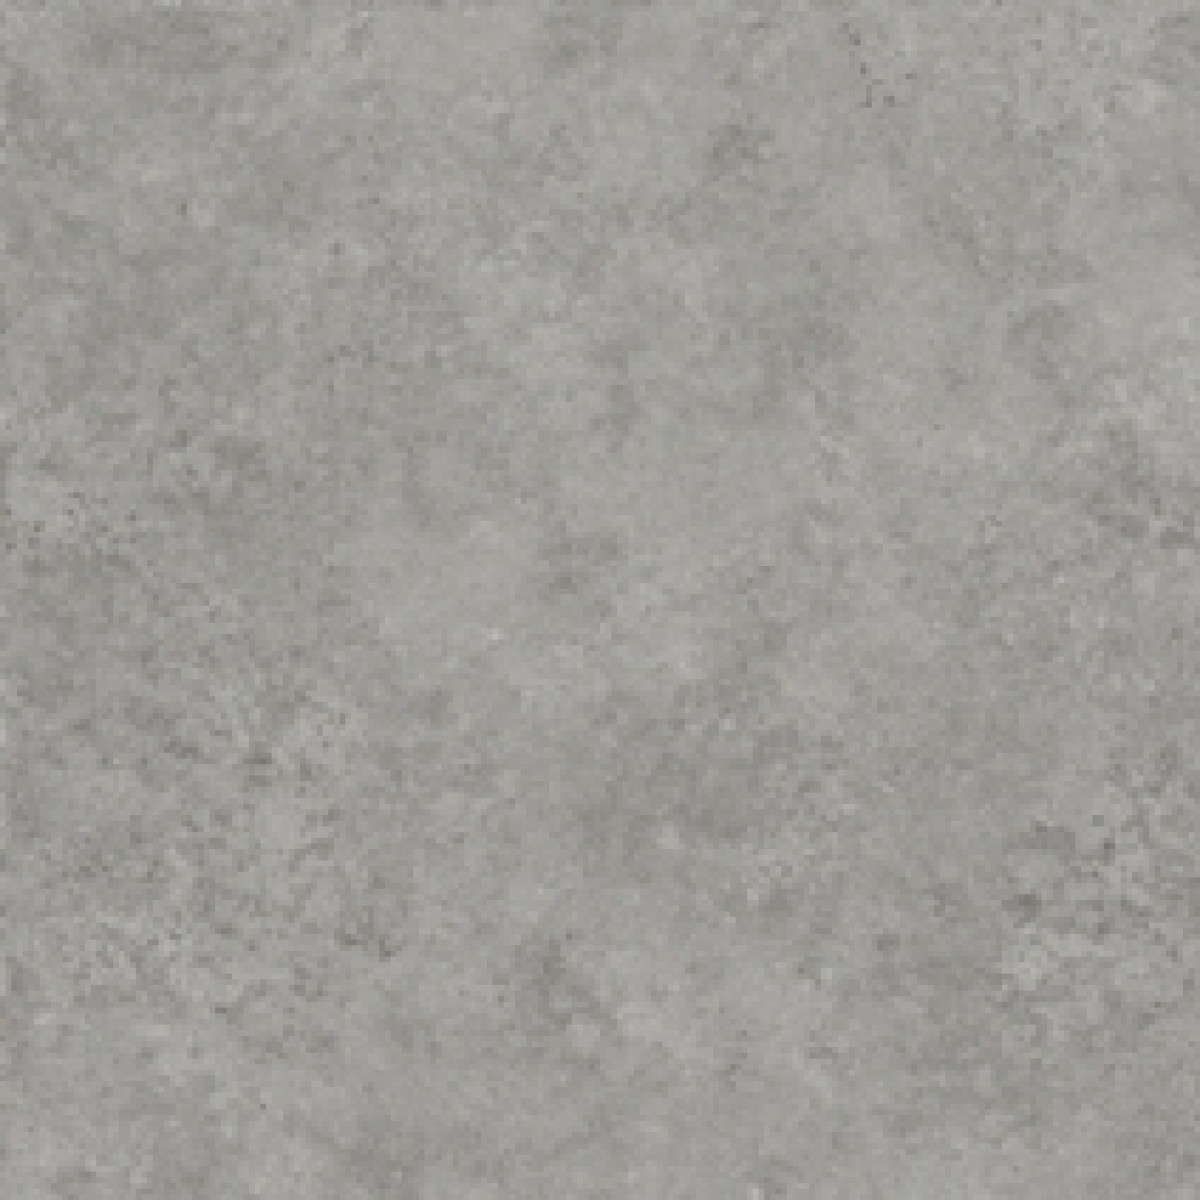 Urban Cement Grey Stone Effect Ceramic Wall Floor Tile: 30 Stunning Pictures And Ideas Of Vinyl Flooring Bathroom